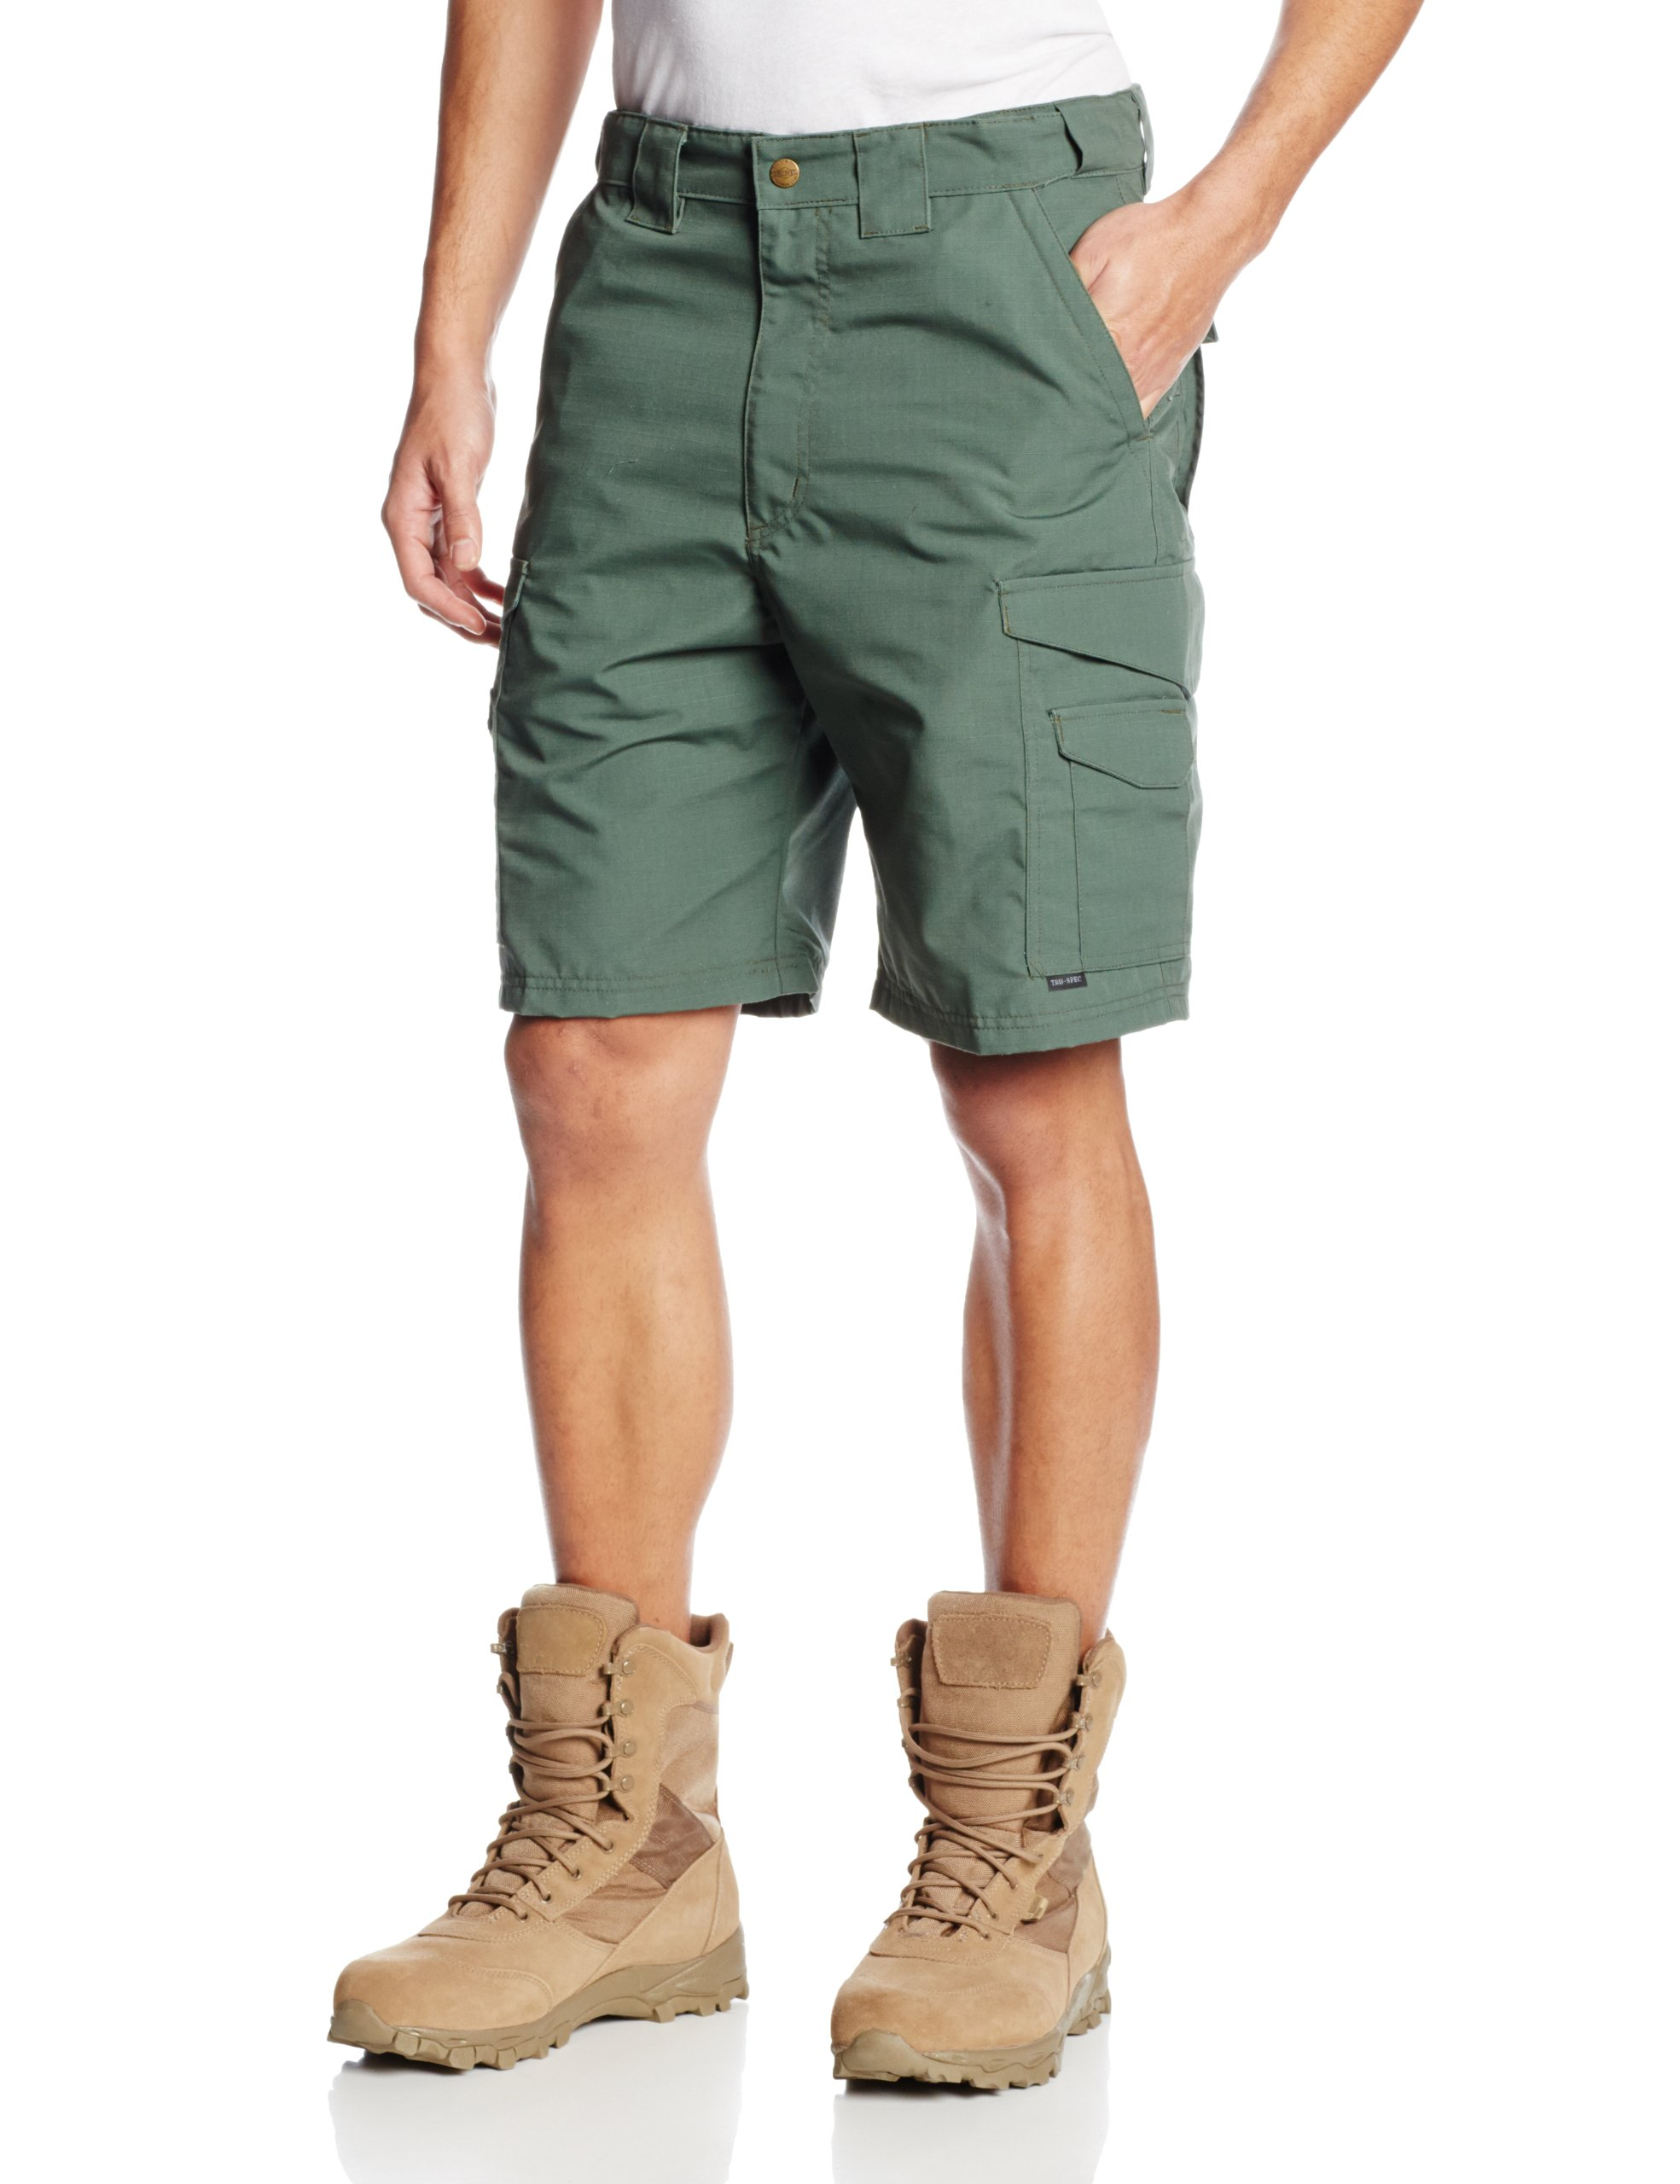 Tru-Spec Men's 24-7 Polyester Cotton Rip Stop 9-Inch Shorts, Olive Drab, 34-Inch